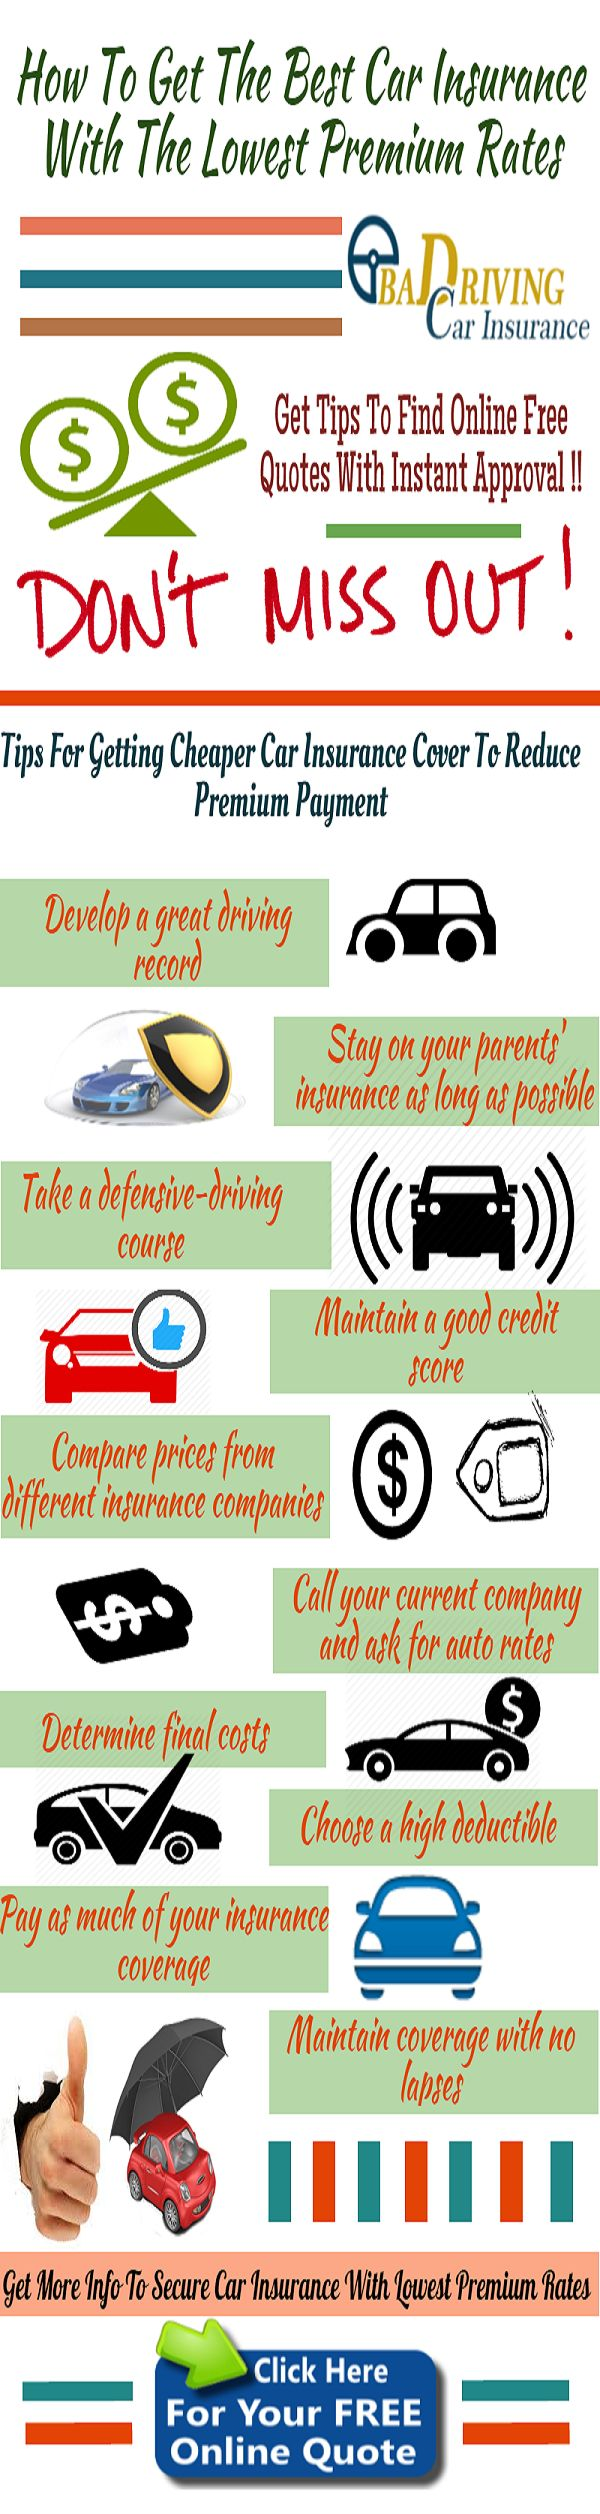 Car Insurance Free Quote Captivating 9 Best Carauto Insurance Infographic Images On Pinterest